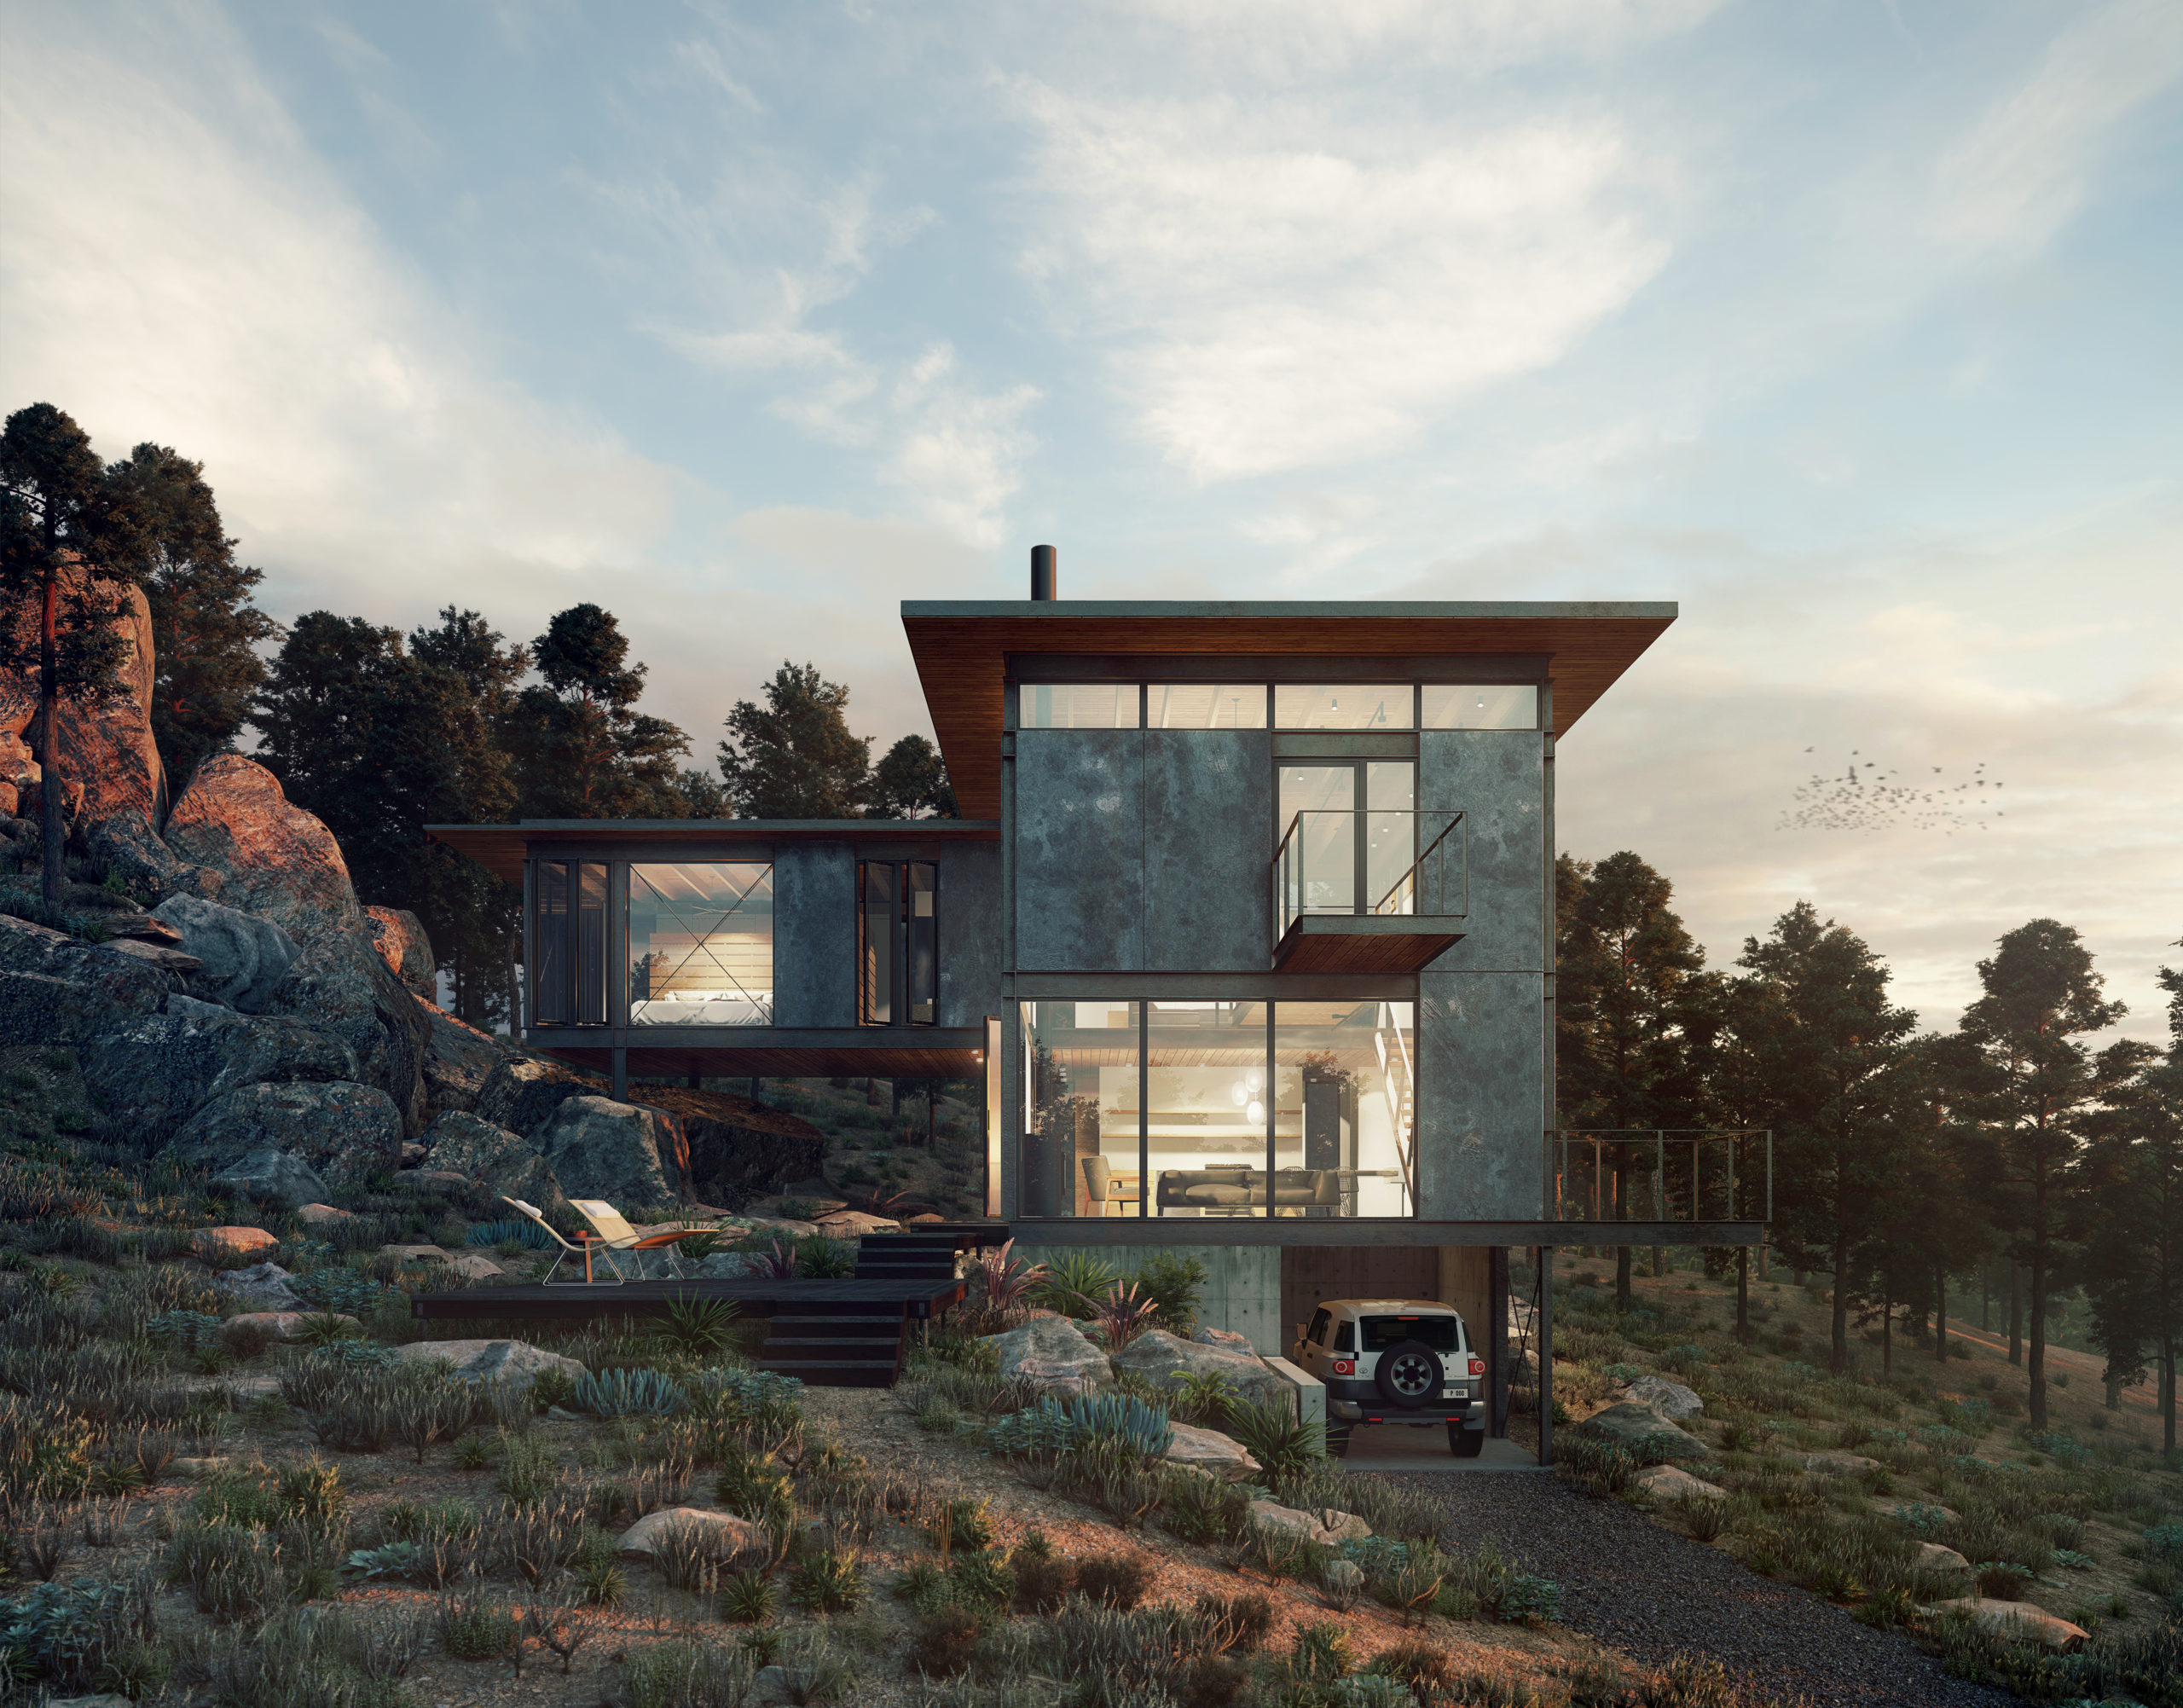 Rendering of The Lookout project by Renée del Gaudio Architecture